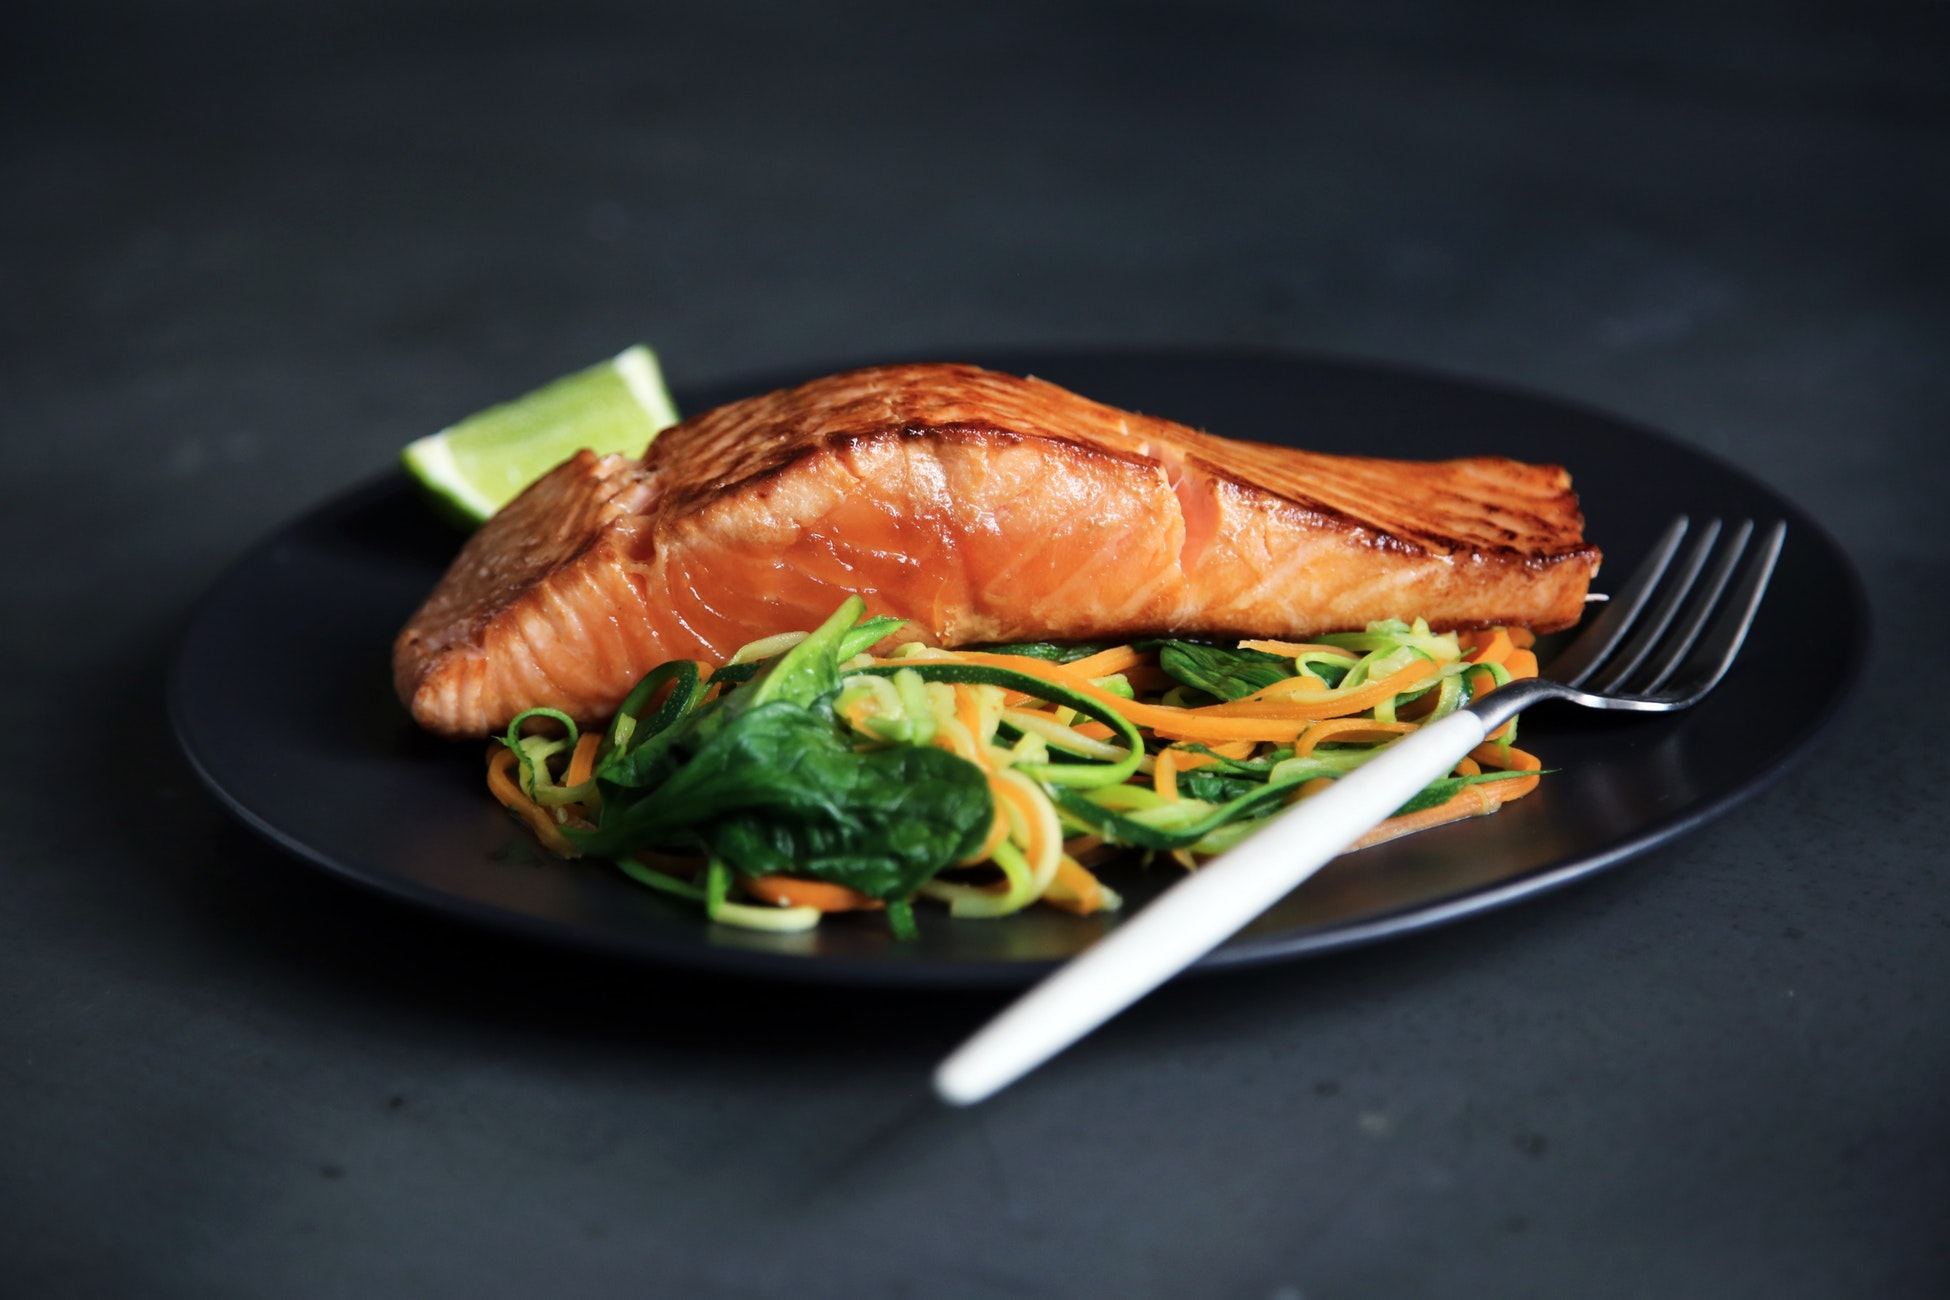 Oily fish contain healthy fats that reduce inflammation and skin-boosting antioxidants.